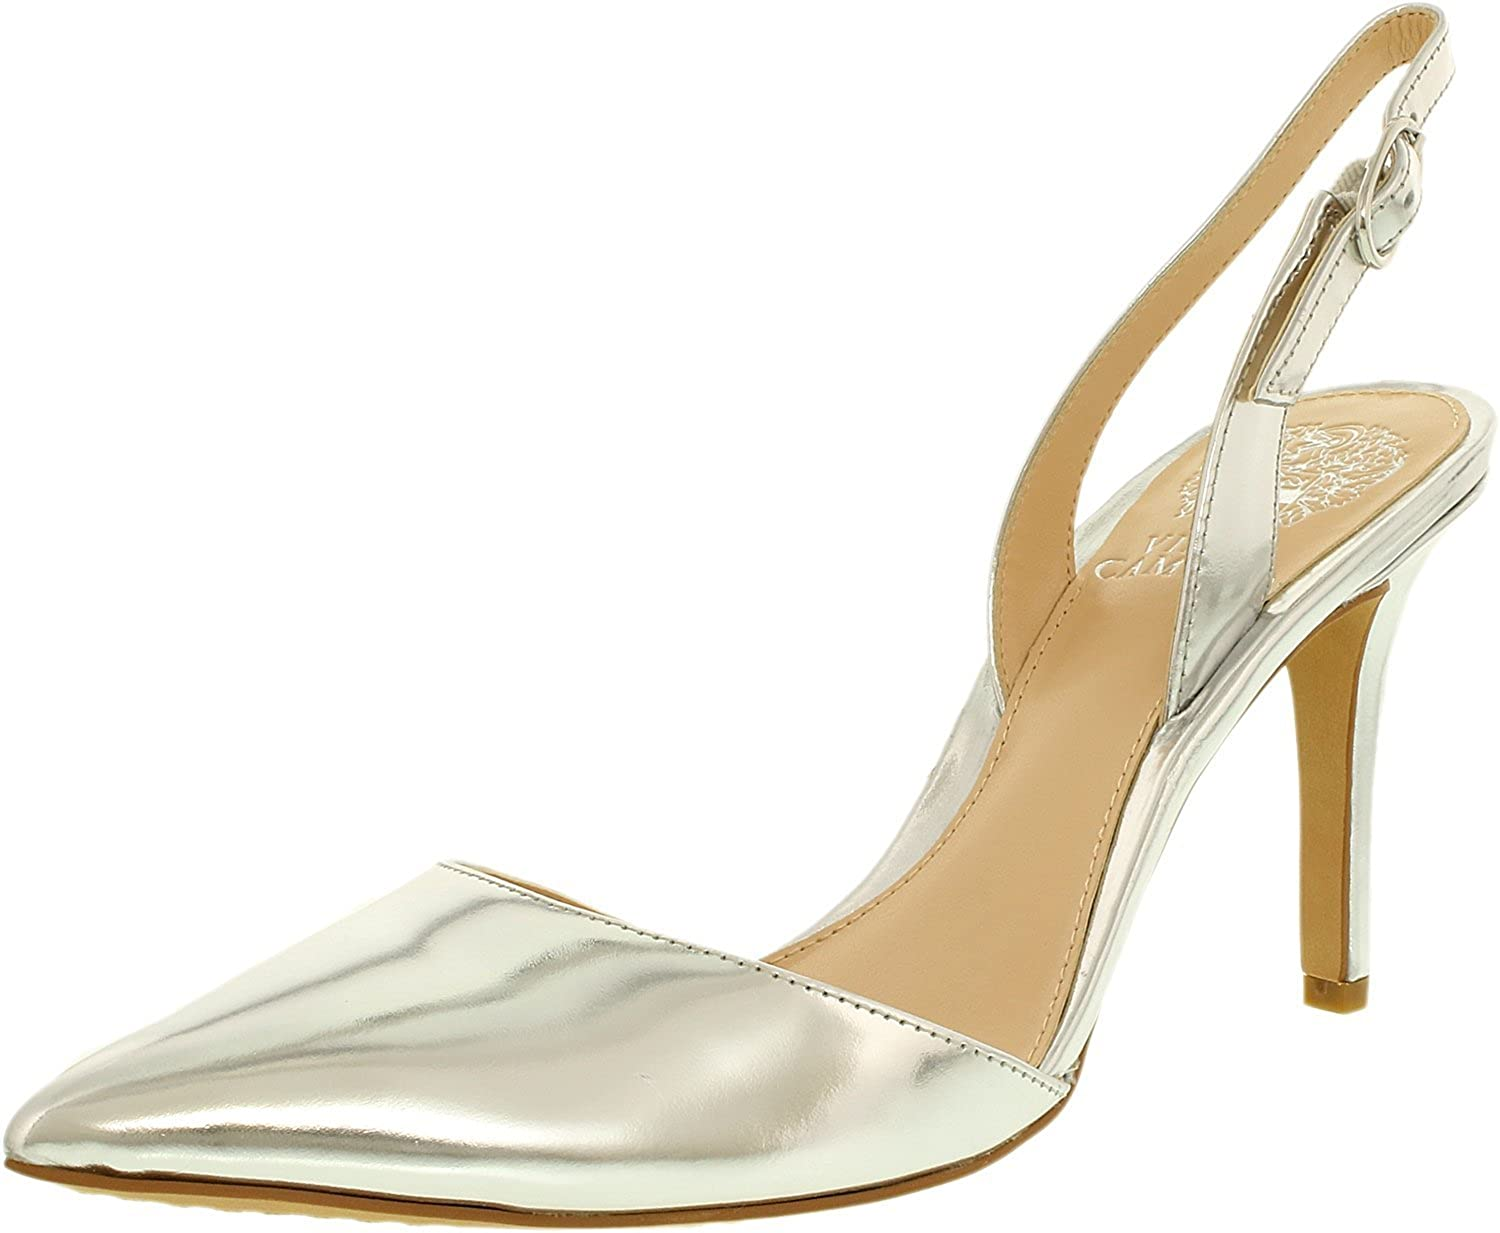 Vince Camuto Women's Barlowe Metallic Ankle-High Leather Pump